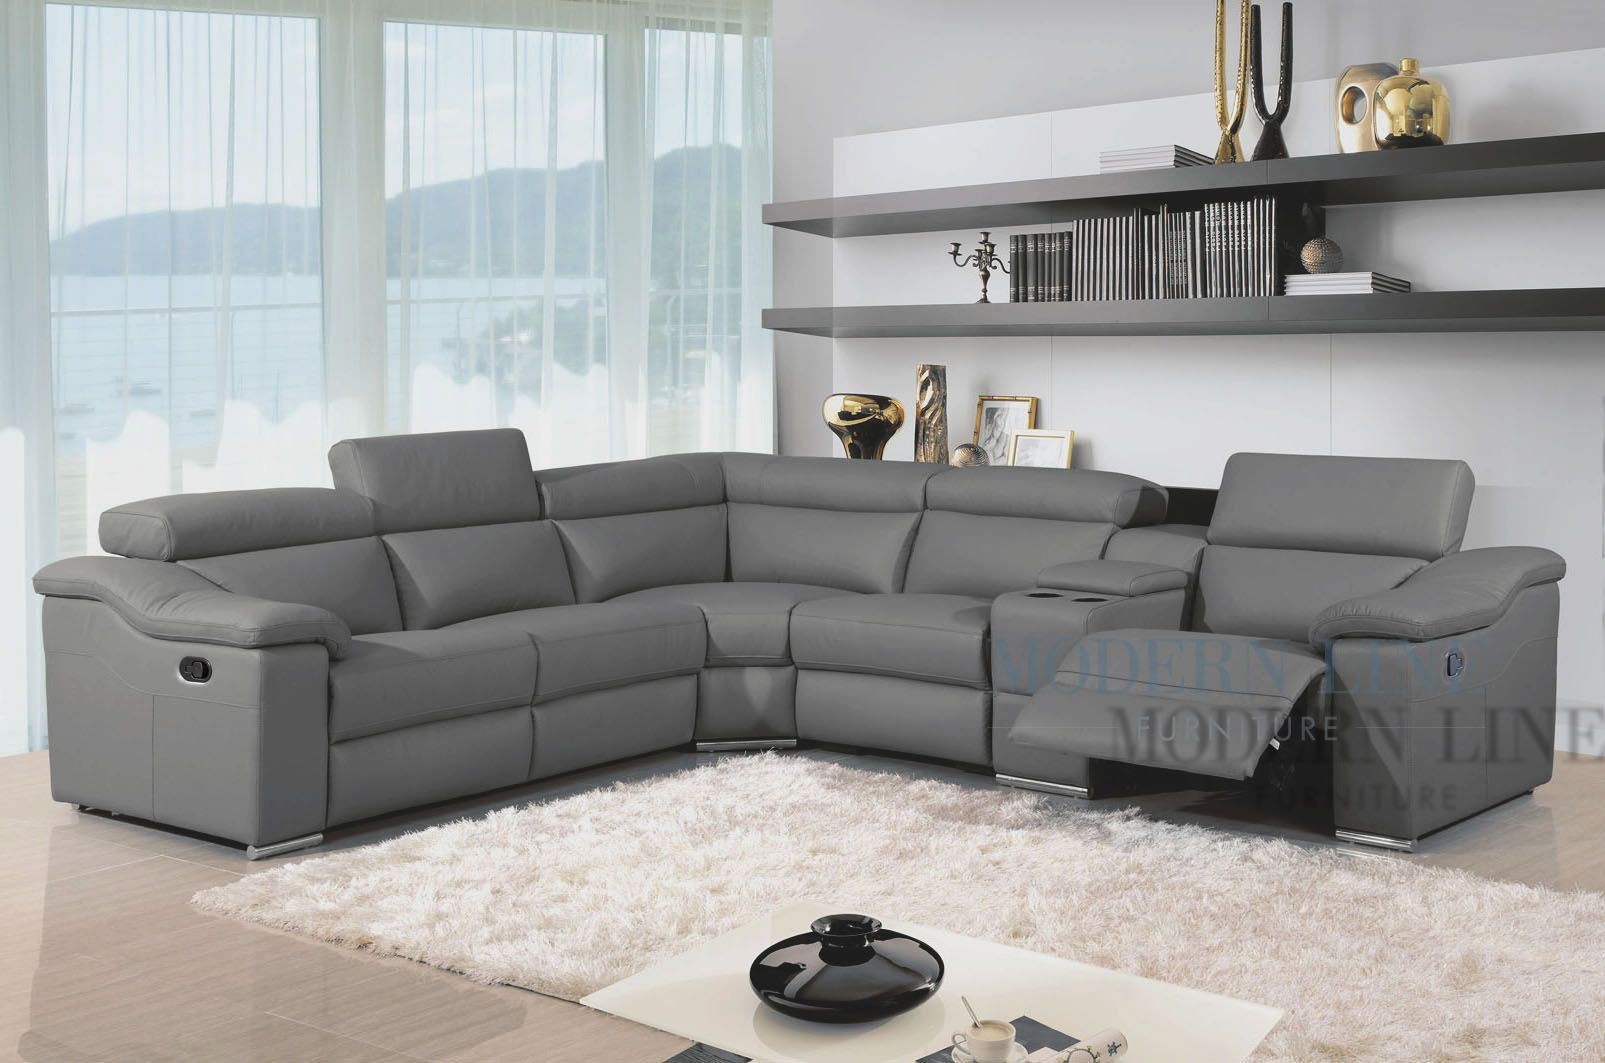 awesome Great Charcoal Grey Sectional Sofa 29 About Remodel Home Design Ideas with Charcoal Grey Sectional · Grey Leather CouchLeather Reclining ... & awesome Great Charcoal Grey Sectional Sofa 29 About Remodel Home ... islam-shia.org